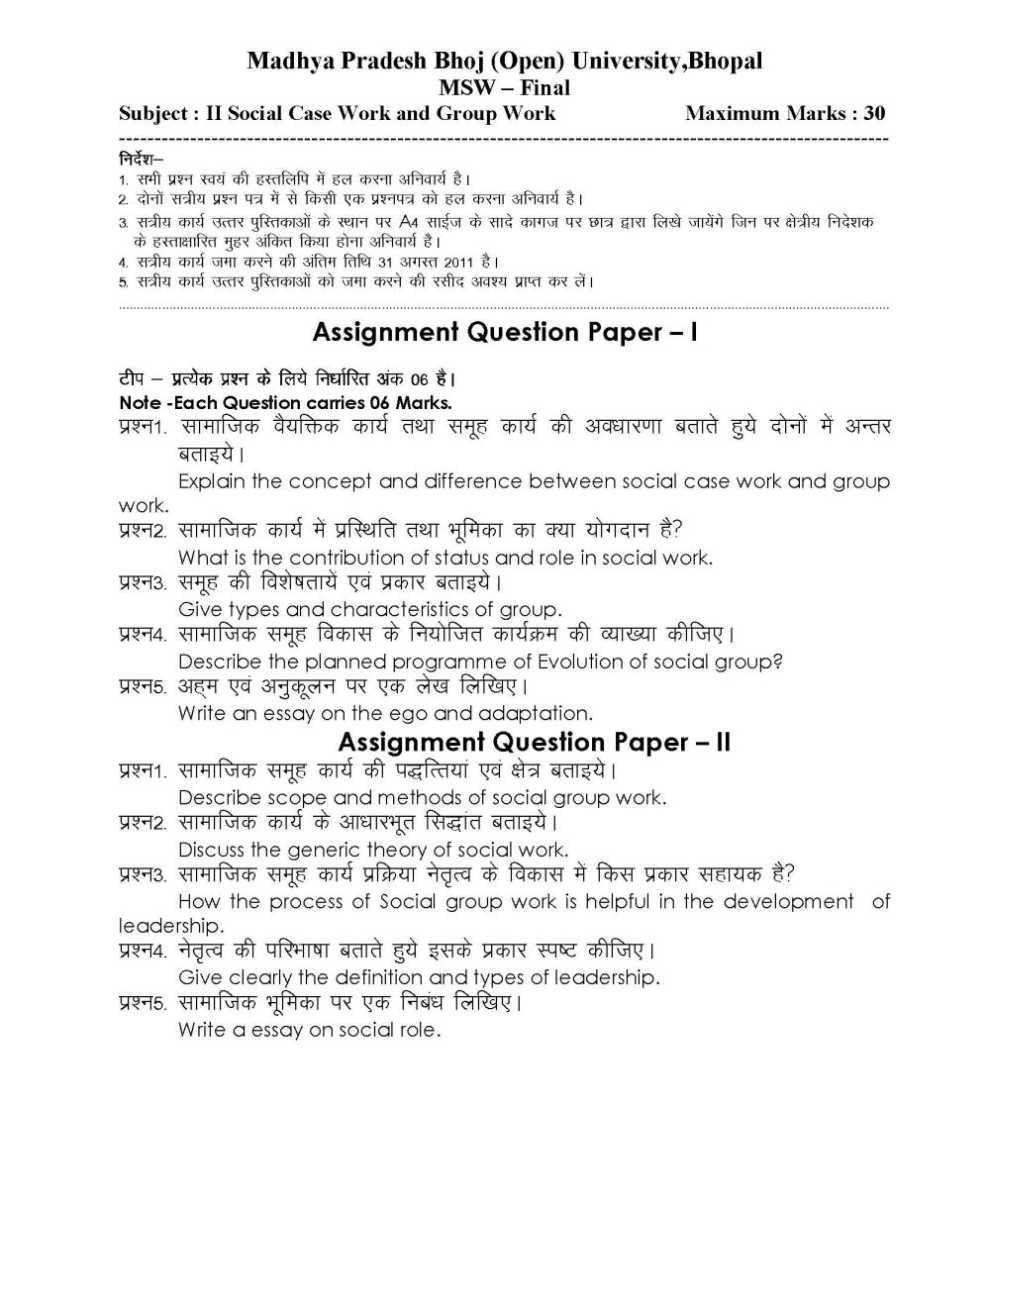 009 Leadership Essays Essay Example Bhoj University Bhopal Msw Striking Chevening Samples Uc Examples Full